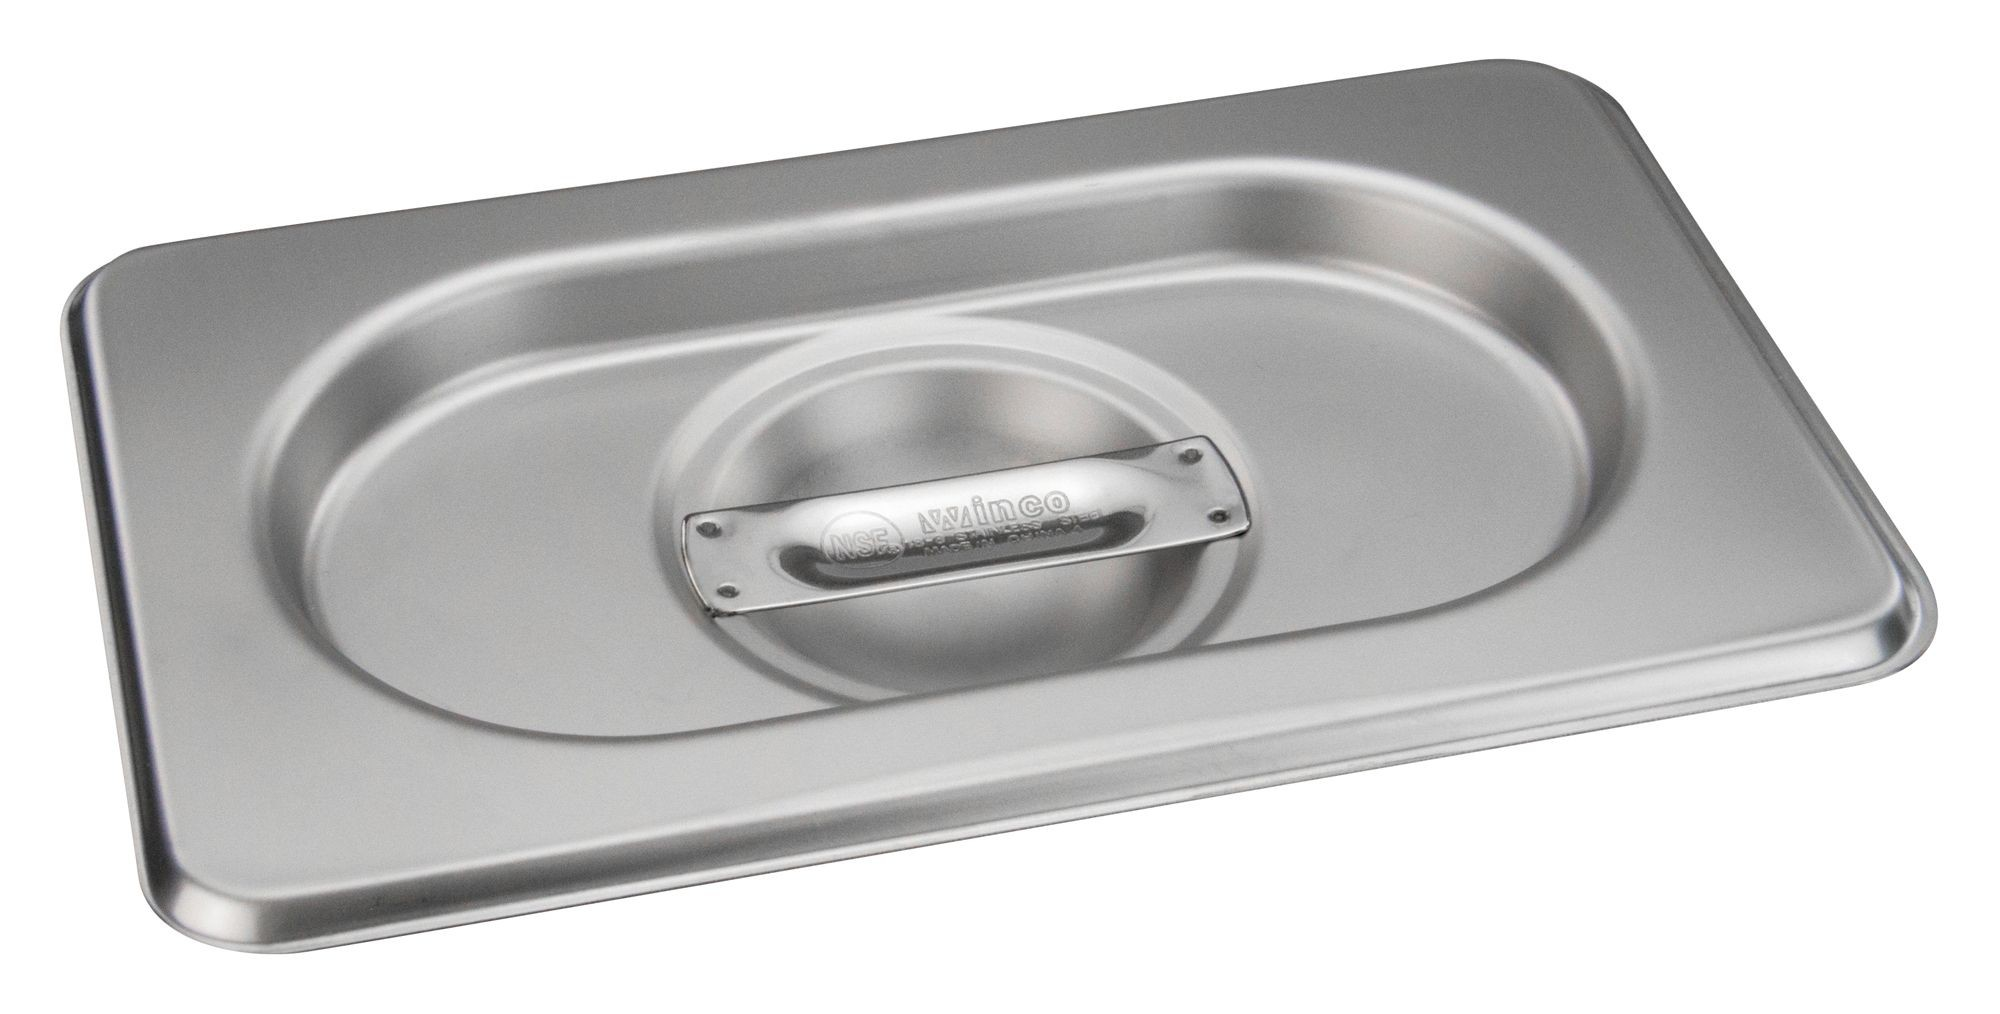 Winco Spscn Gn Soild Steam Pan Cover For Spjh 906g N